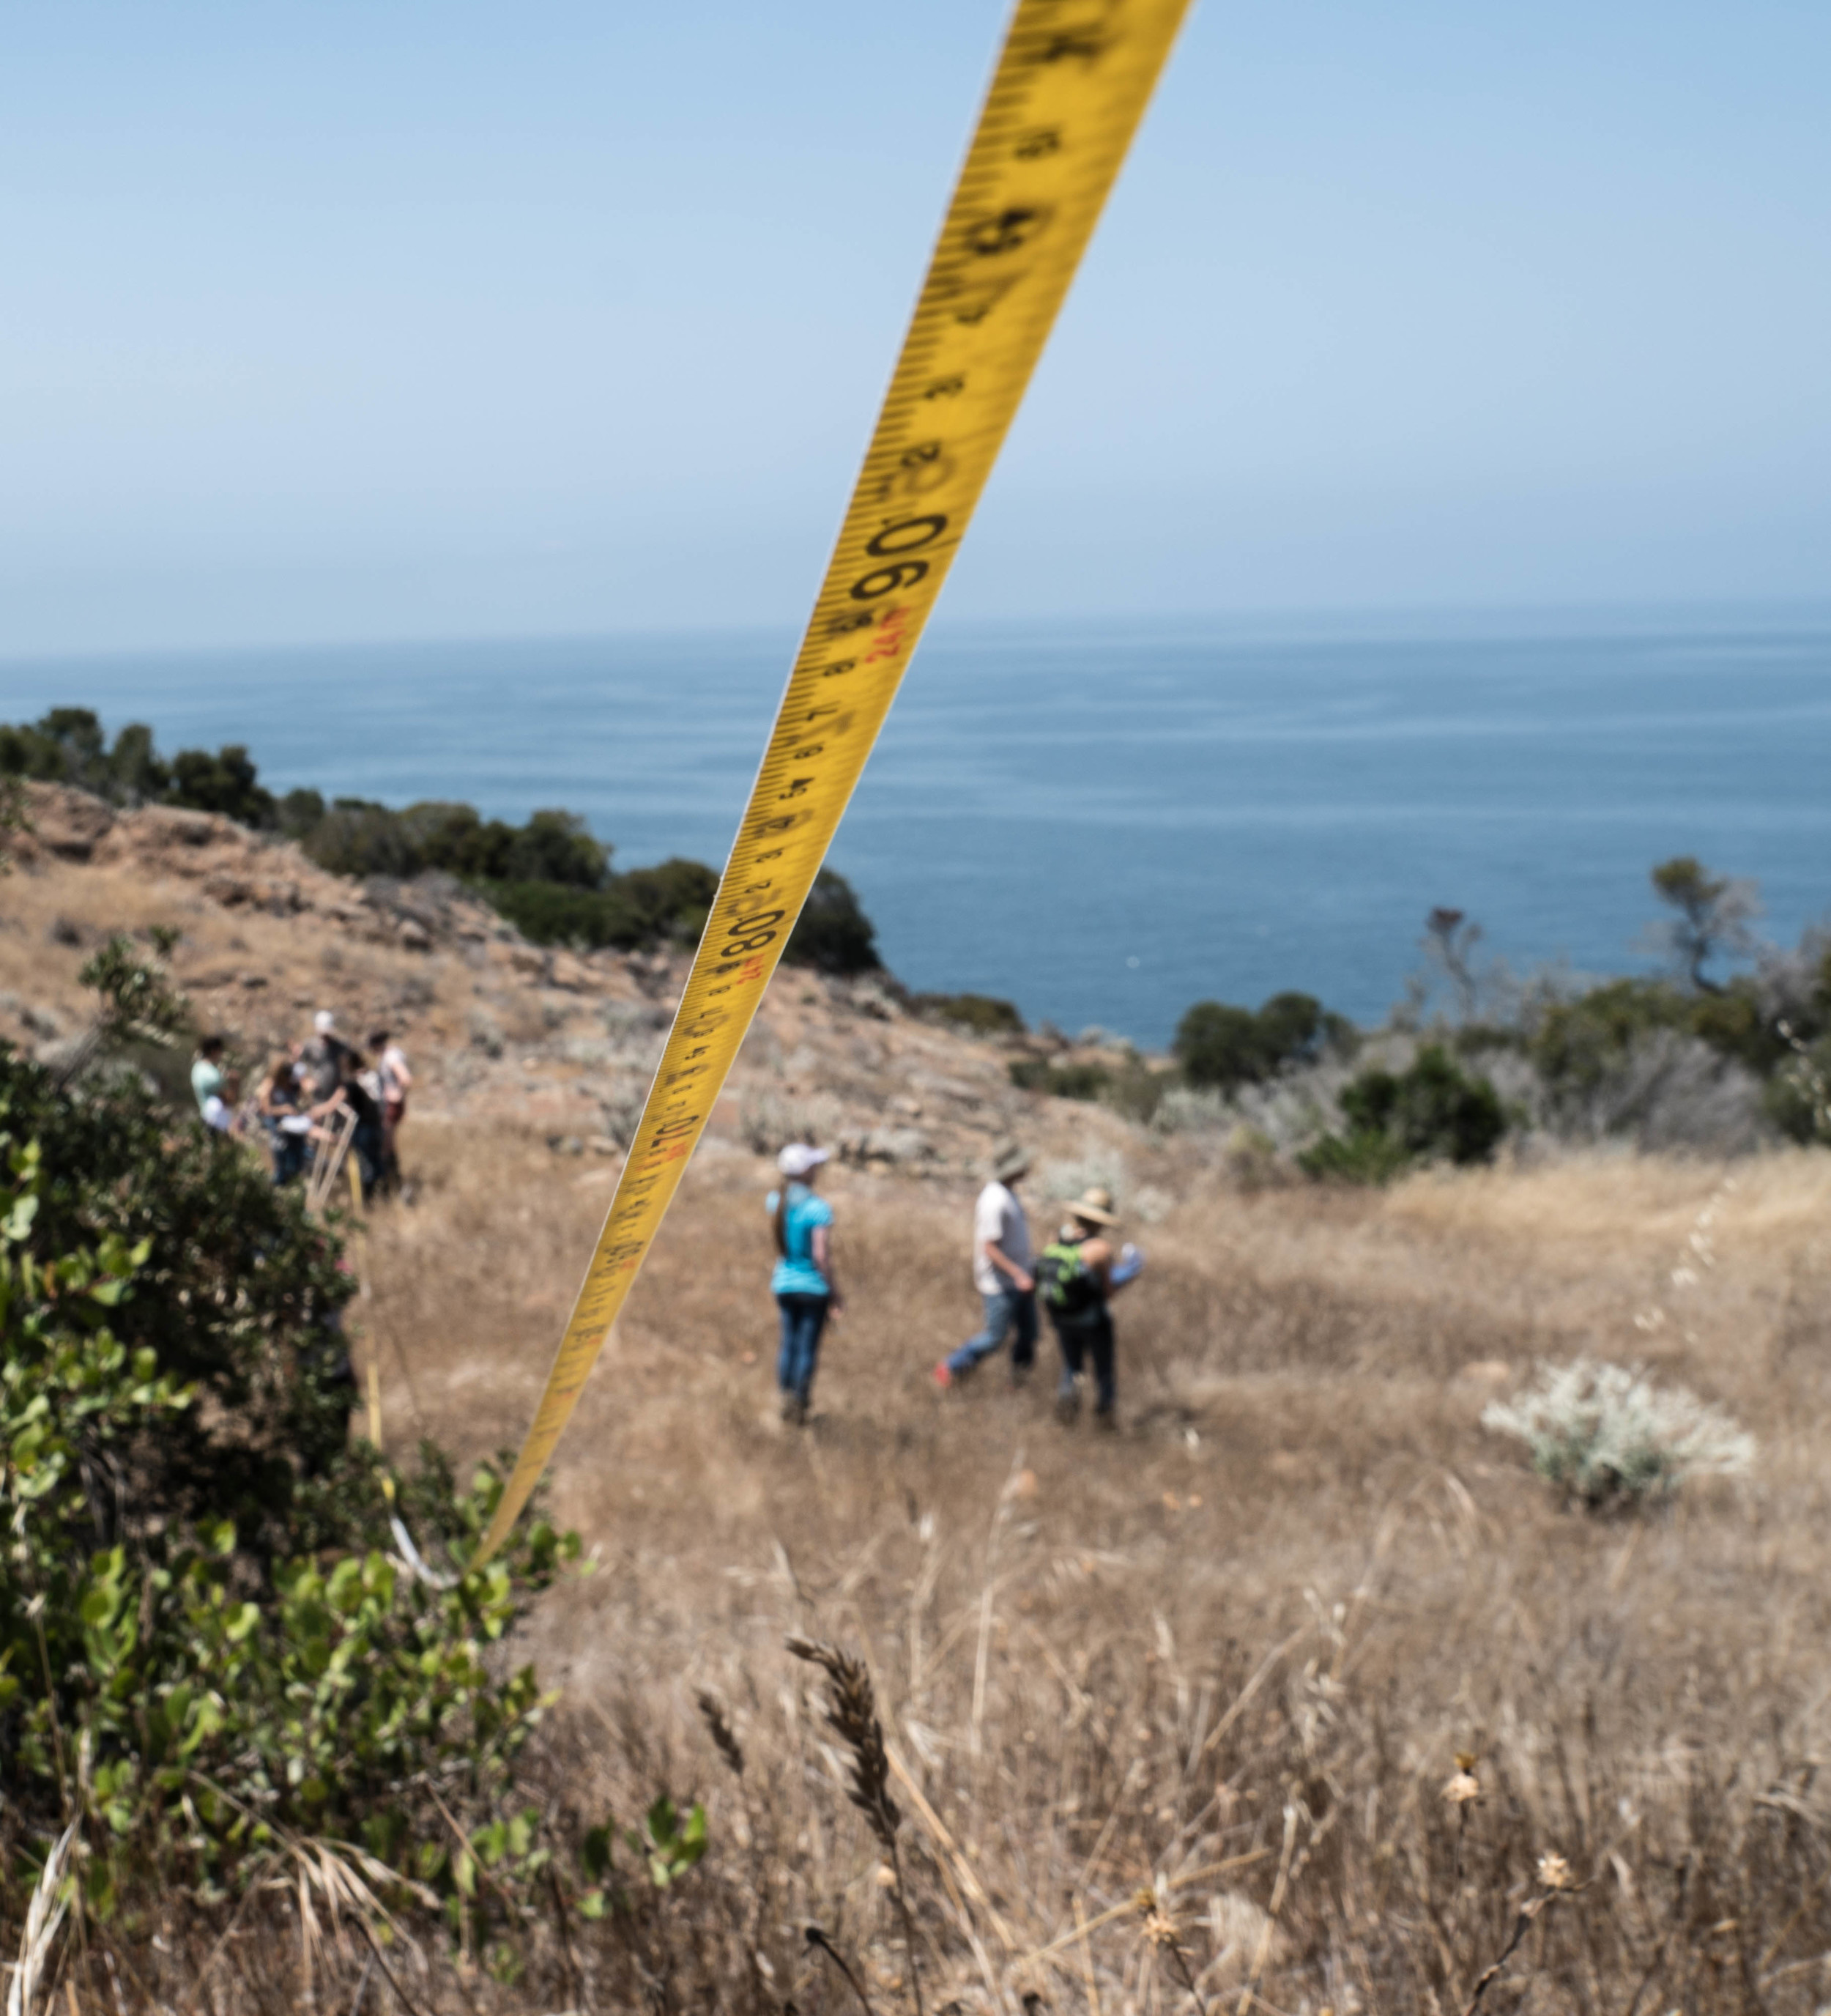 Working to understand the balance. Trail to Pelican Bay, Santa Cruz Island, CA.